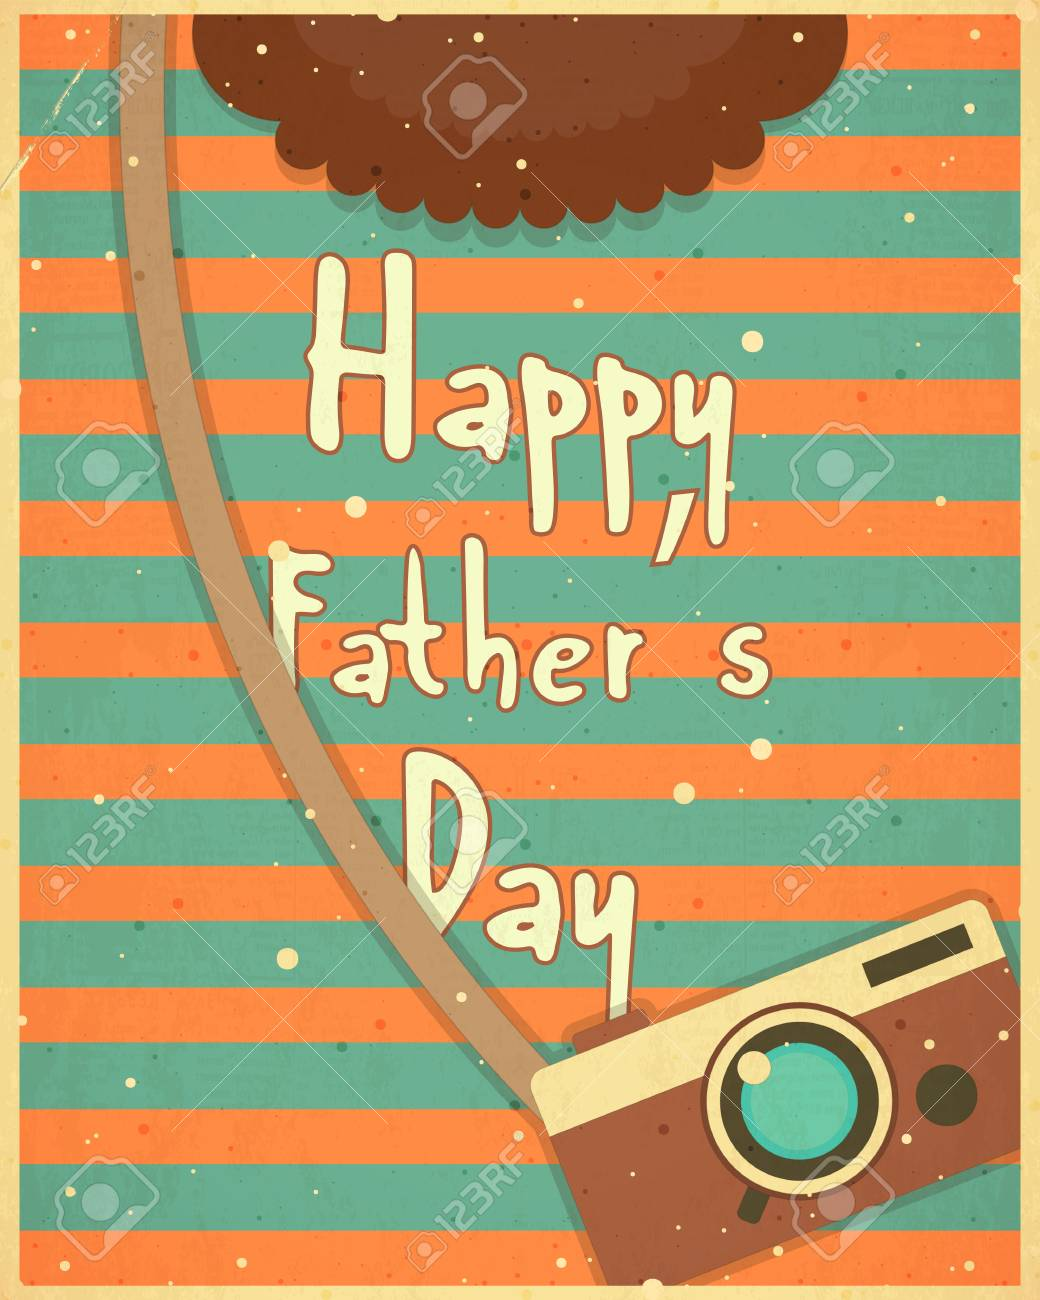 Fathers day greeting card flat design retro style man hipster fathers day greeting card flat design retro style man hipster clothing vector m4hsunfo